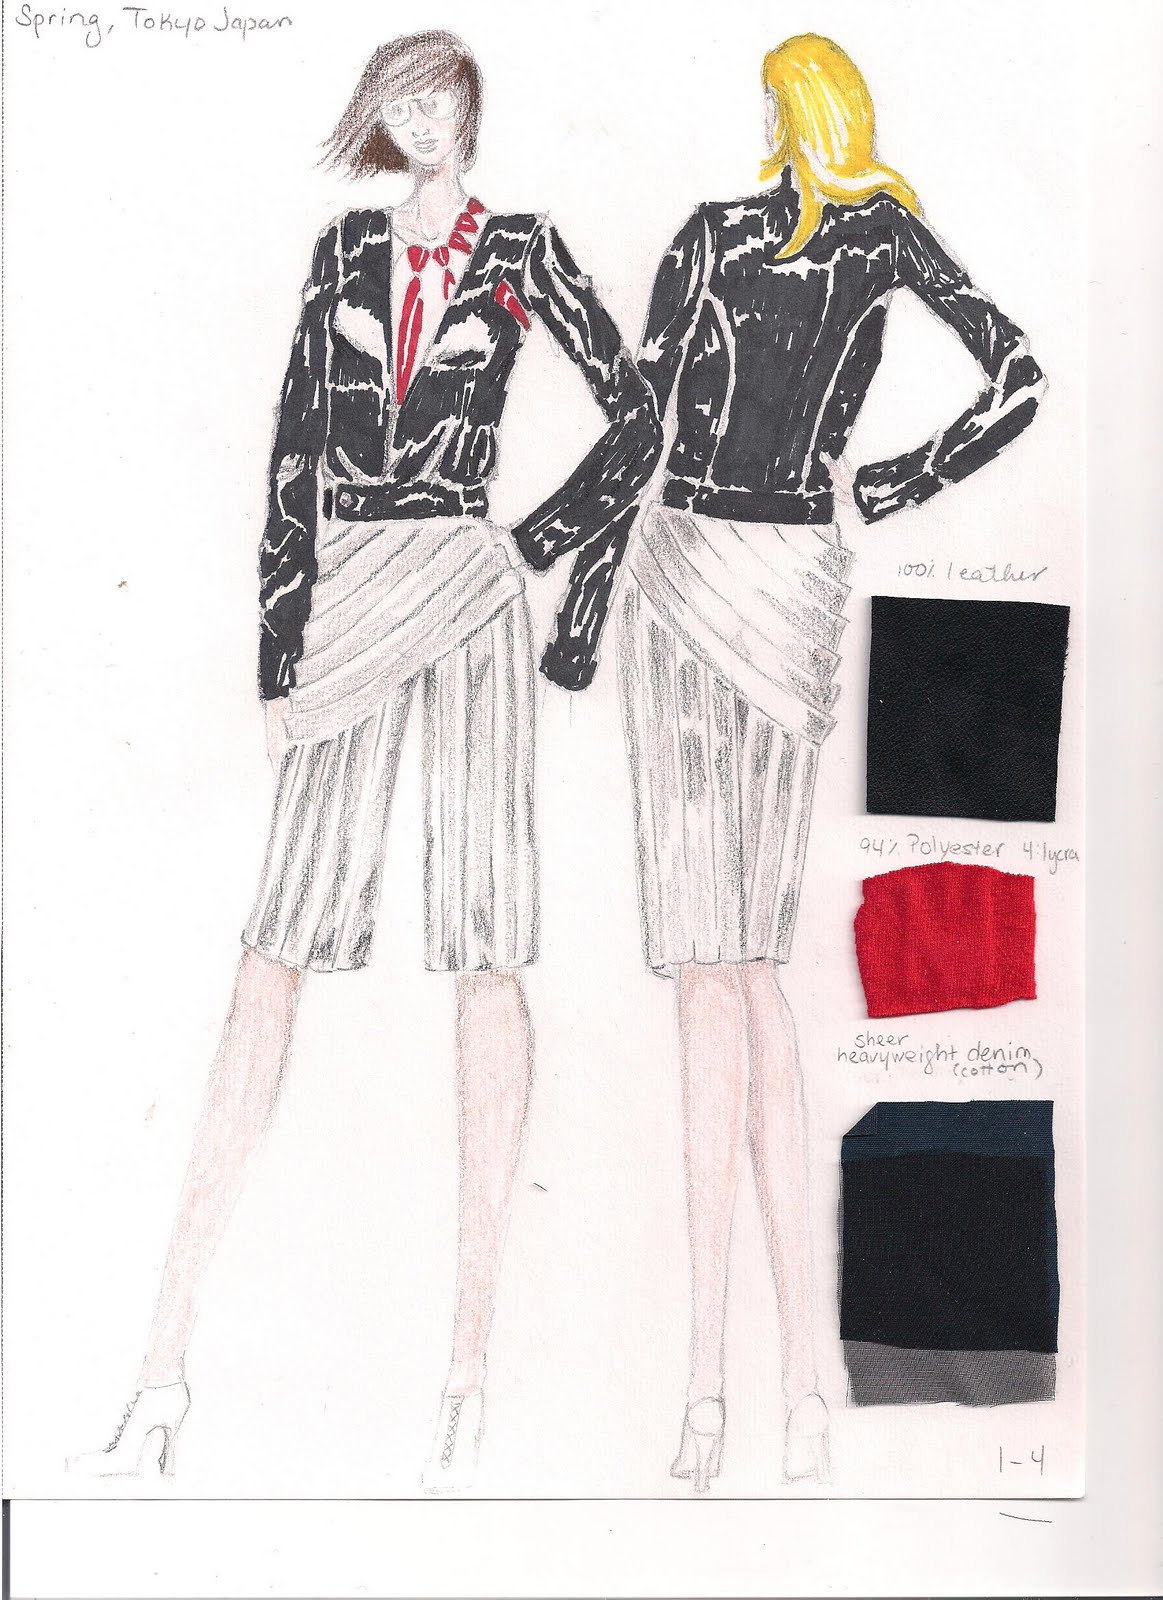 essay about fashion merchandising Free essay: the main roles involved are those of designing, development of new and unique products, production, and creating and developing sales and.